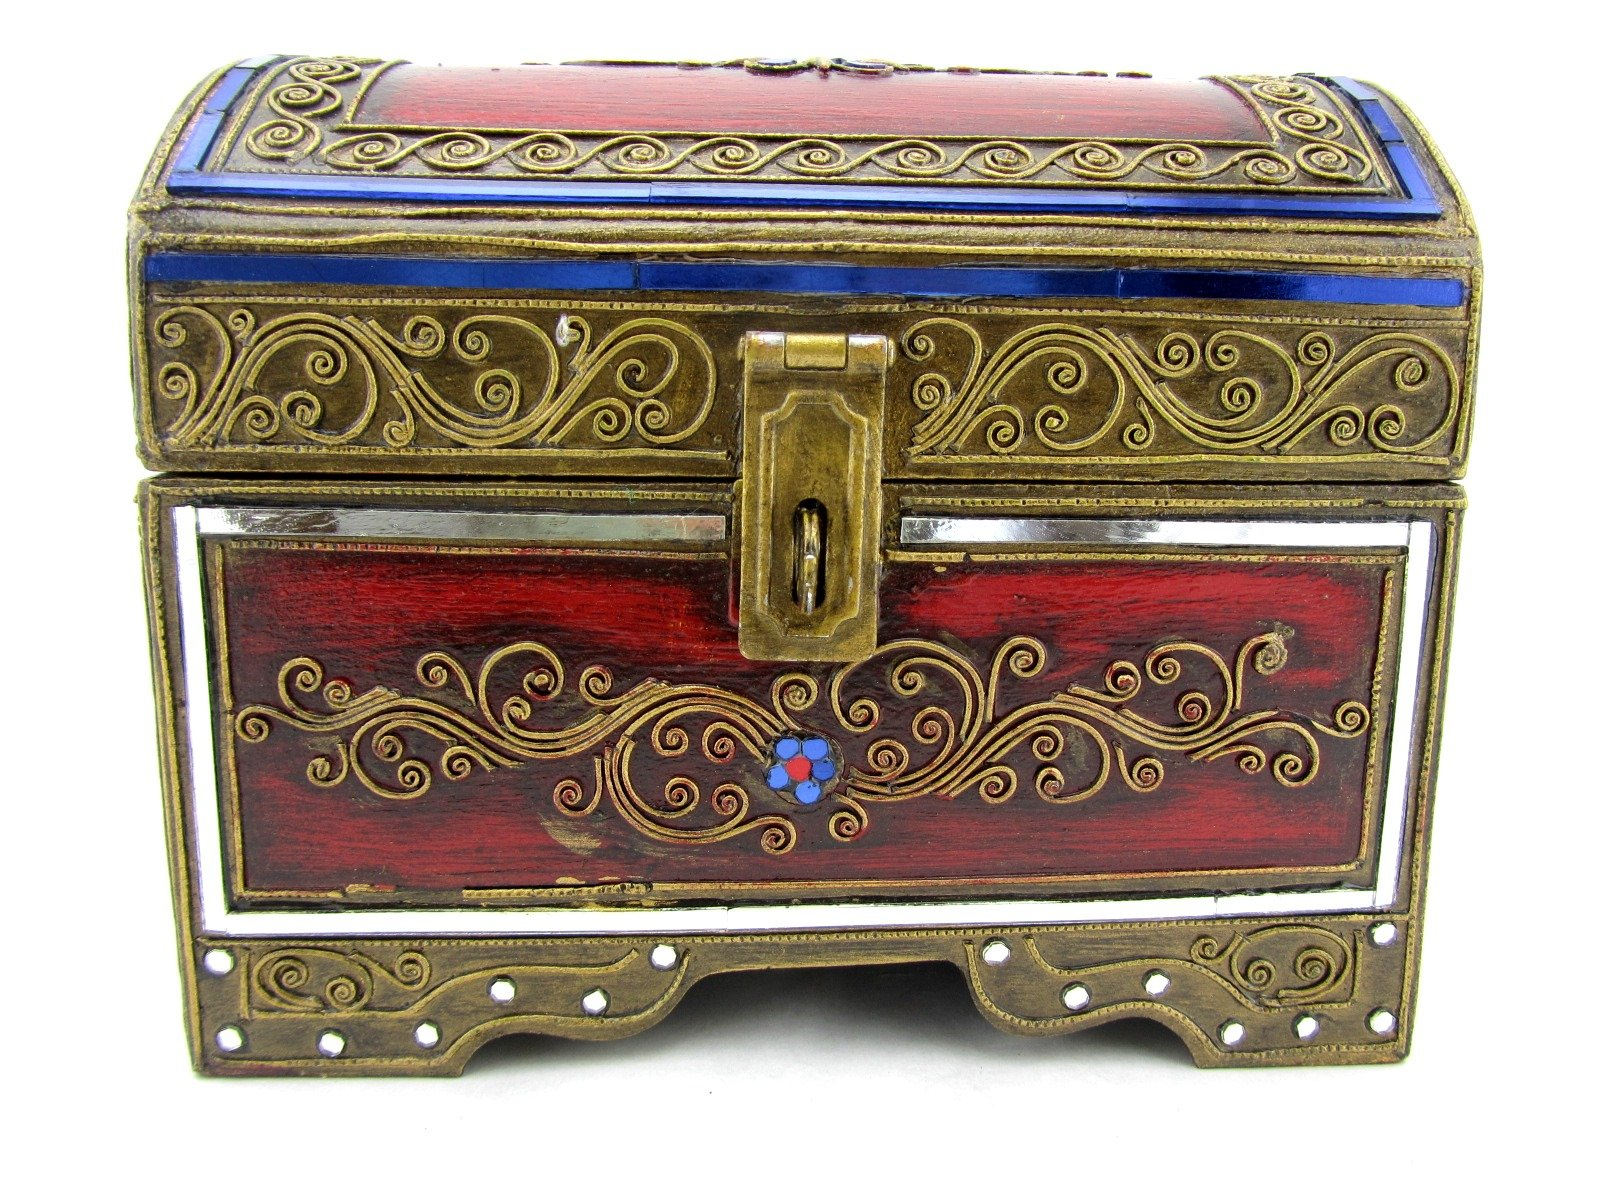 Blue Orchid Thai Handmade Wooden Decorative Trinket Box Jewelry Treasure Chest 9'' (Sapphire)